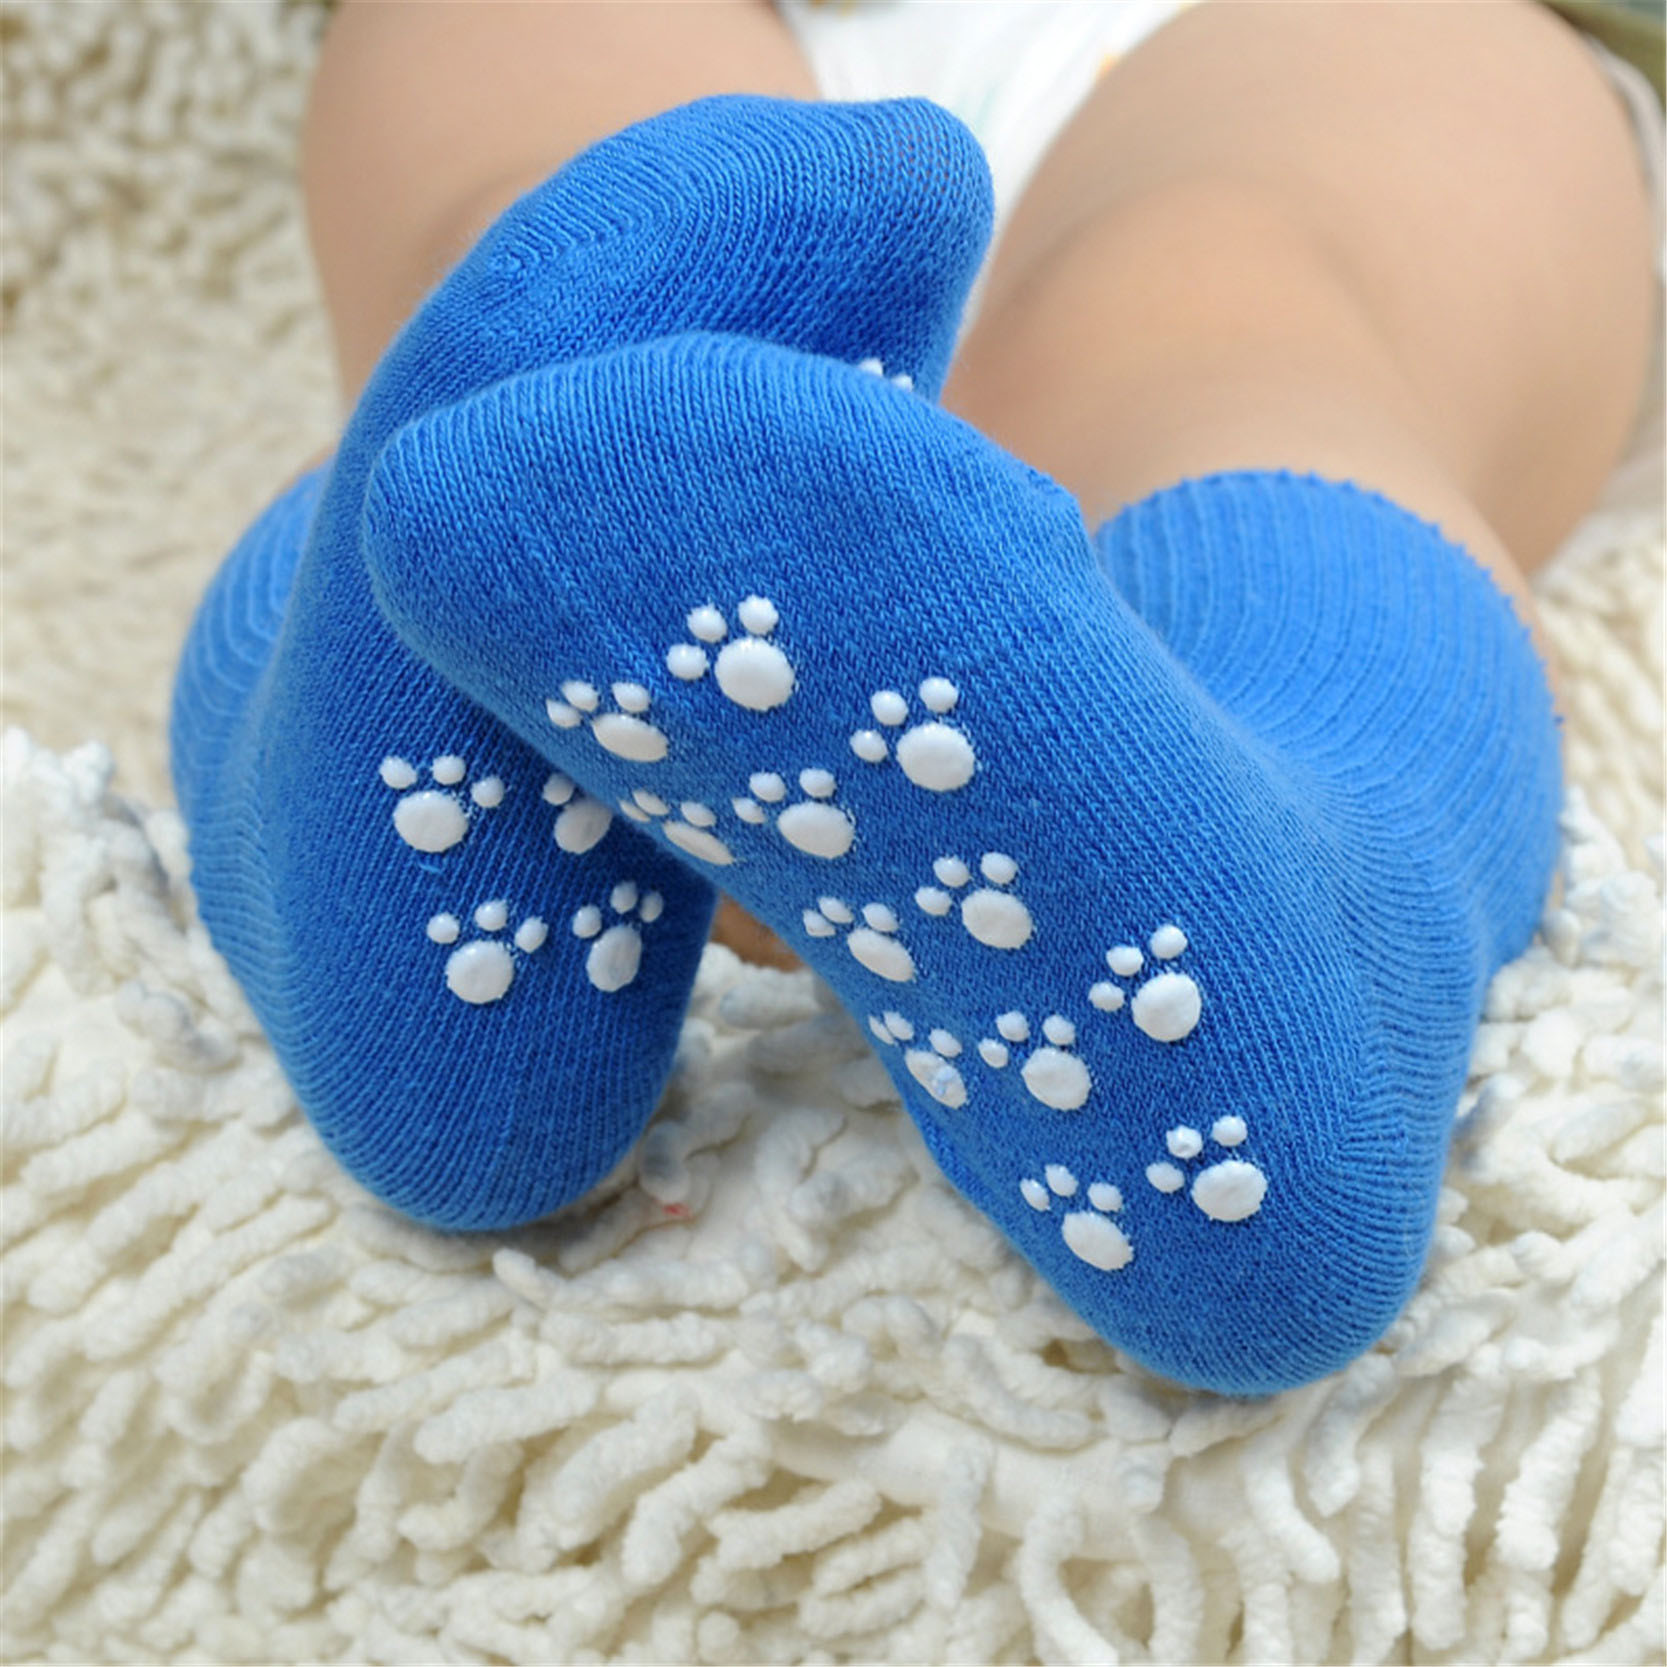 New Born Baby Socks Cotton Anti Slip Comfortable Socks For Girls Boys Unisex Toddler 1-3 Years Kids Socks Candy Solid ColorsNew Born Baby Socks Cotton Anti Slip Comfortable Socks For Girls Boys Unisex Toddler 1-3 Years Kids Socks Candy Solid Colors